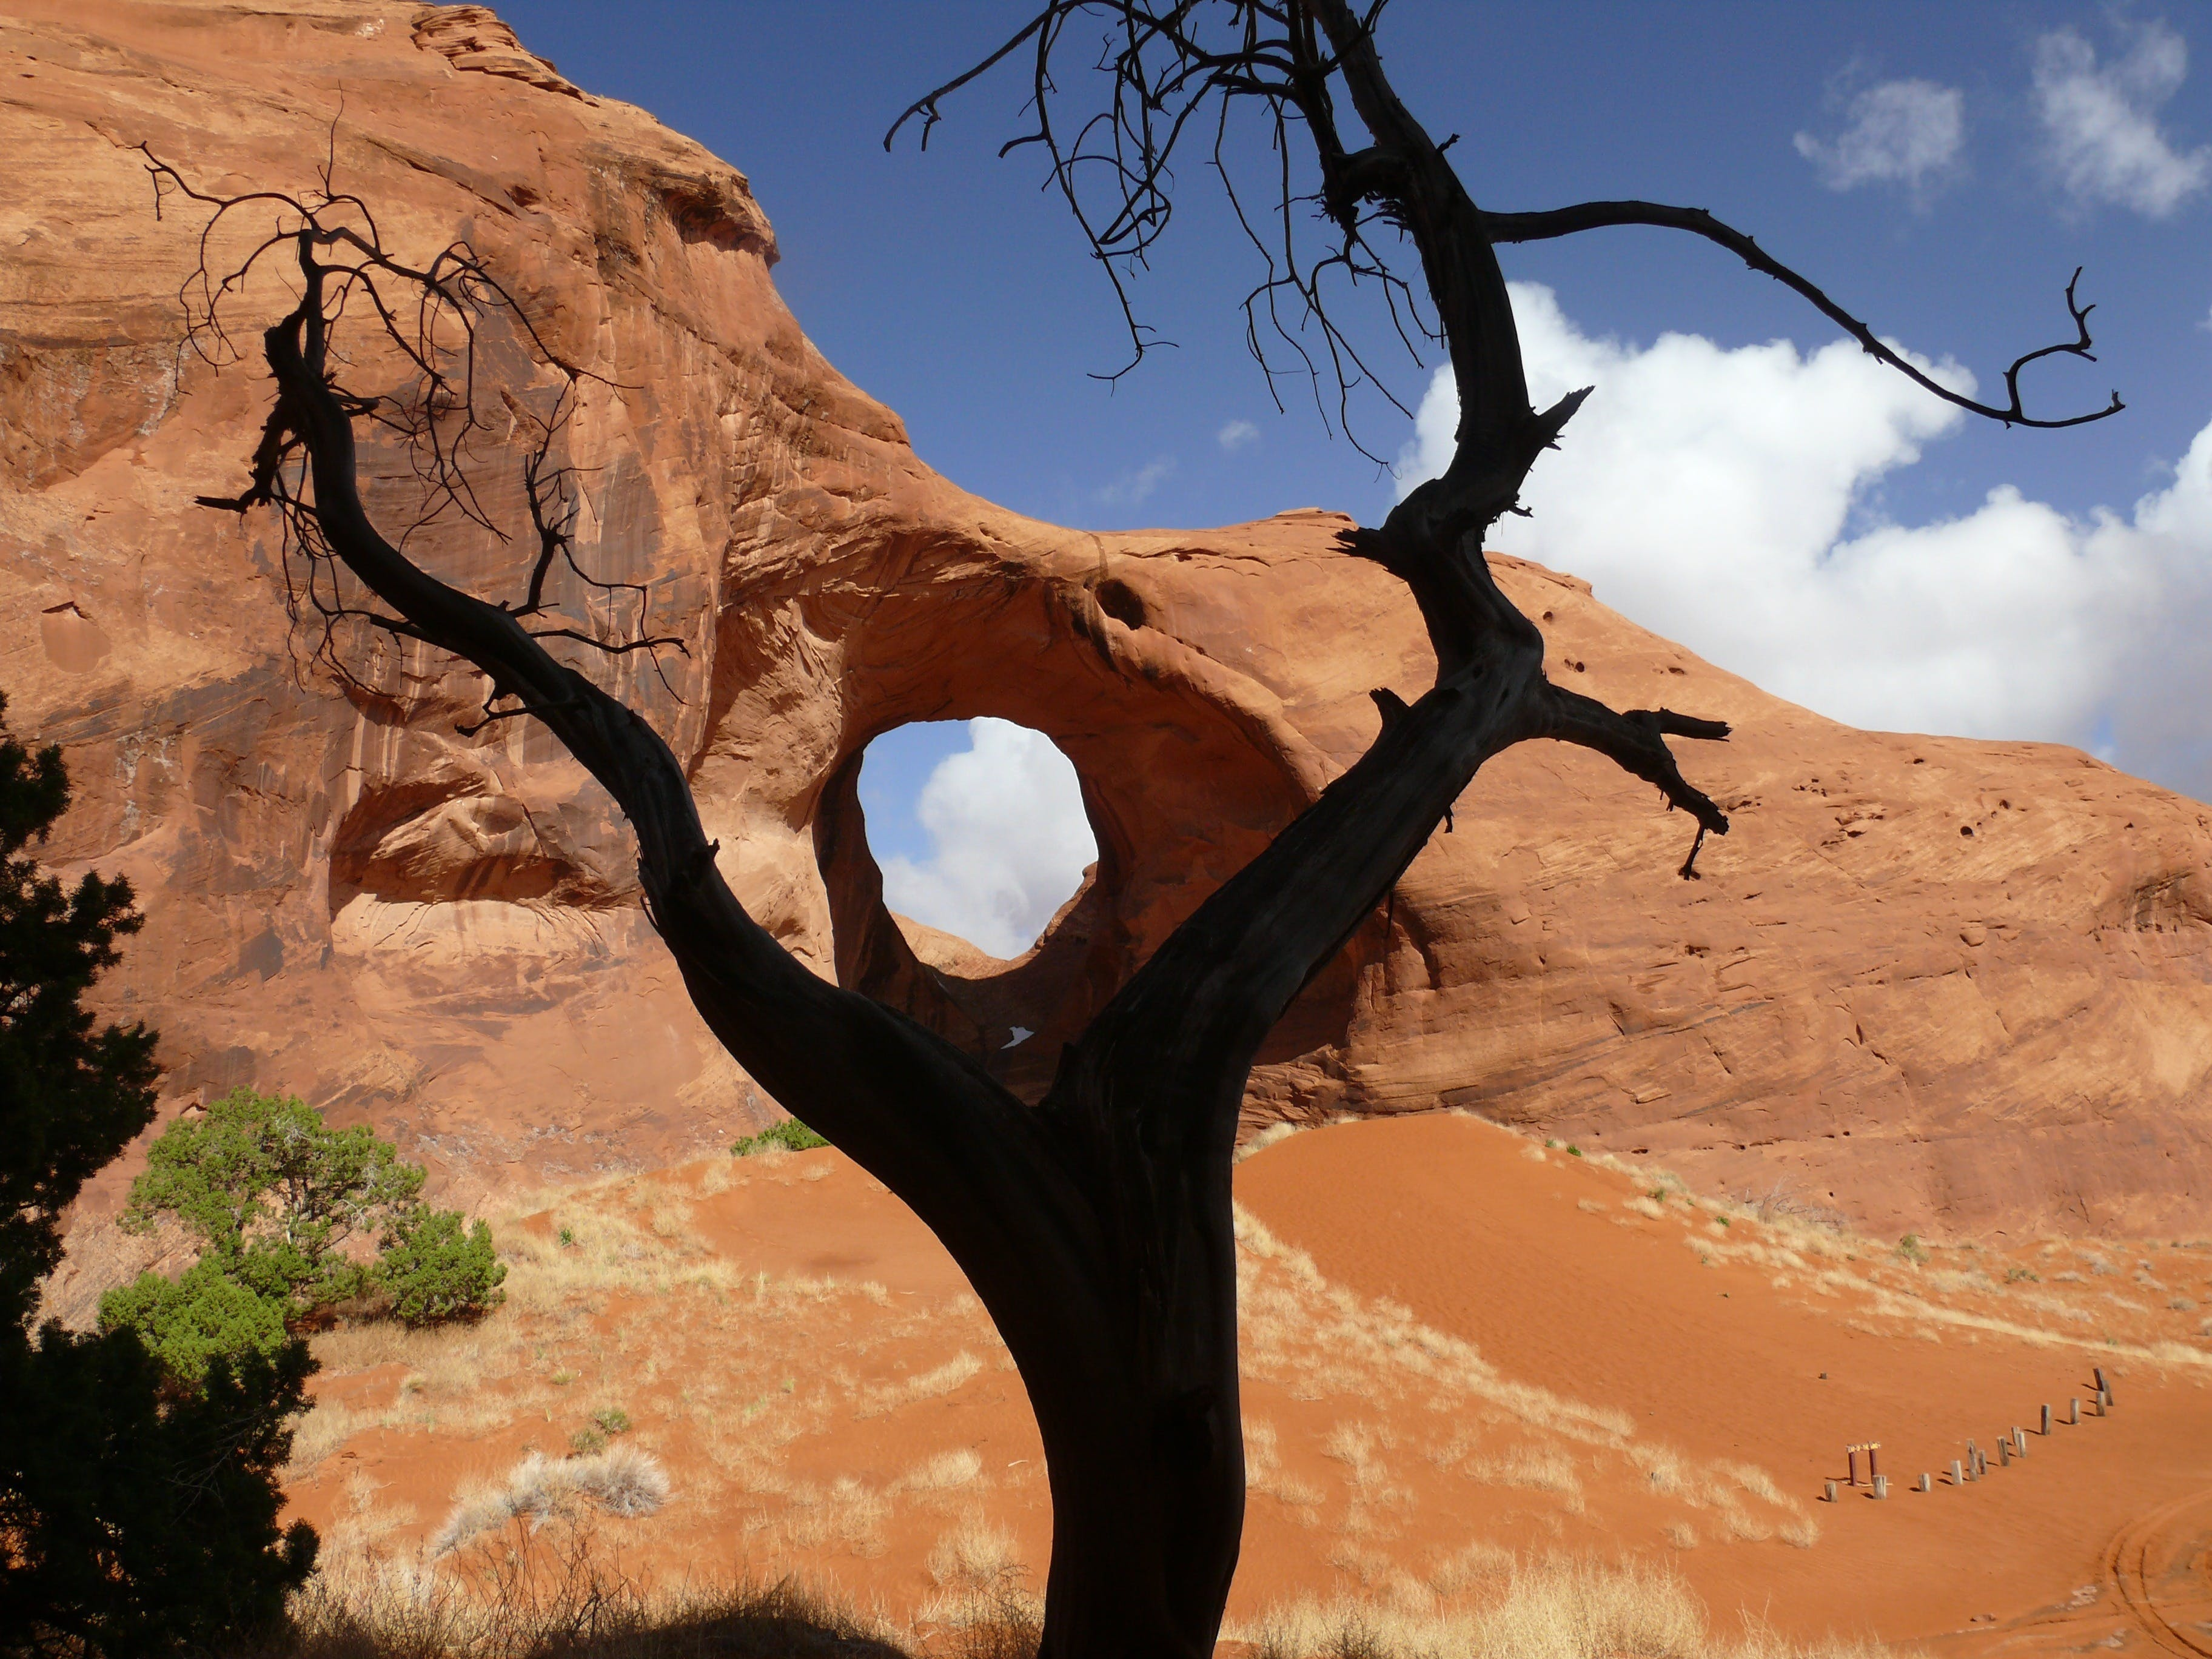 Black Bare Tree on the Brown Dessert Under Blue and White Sky